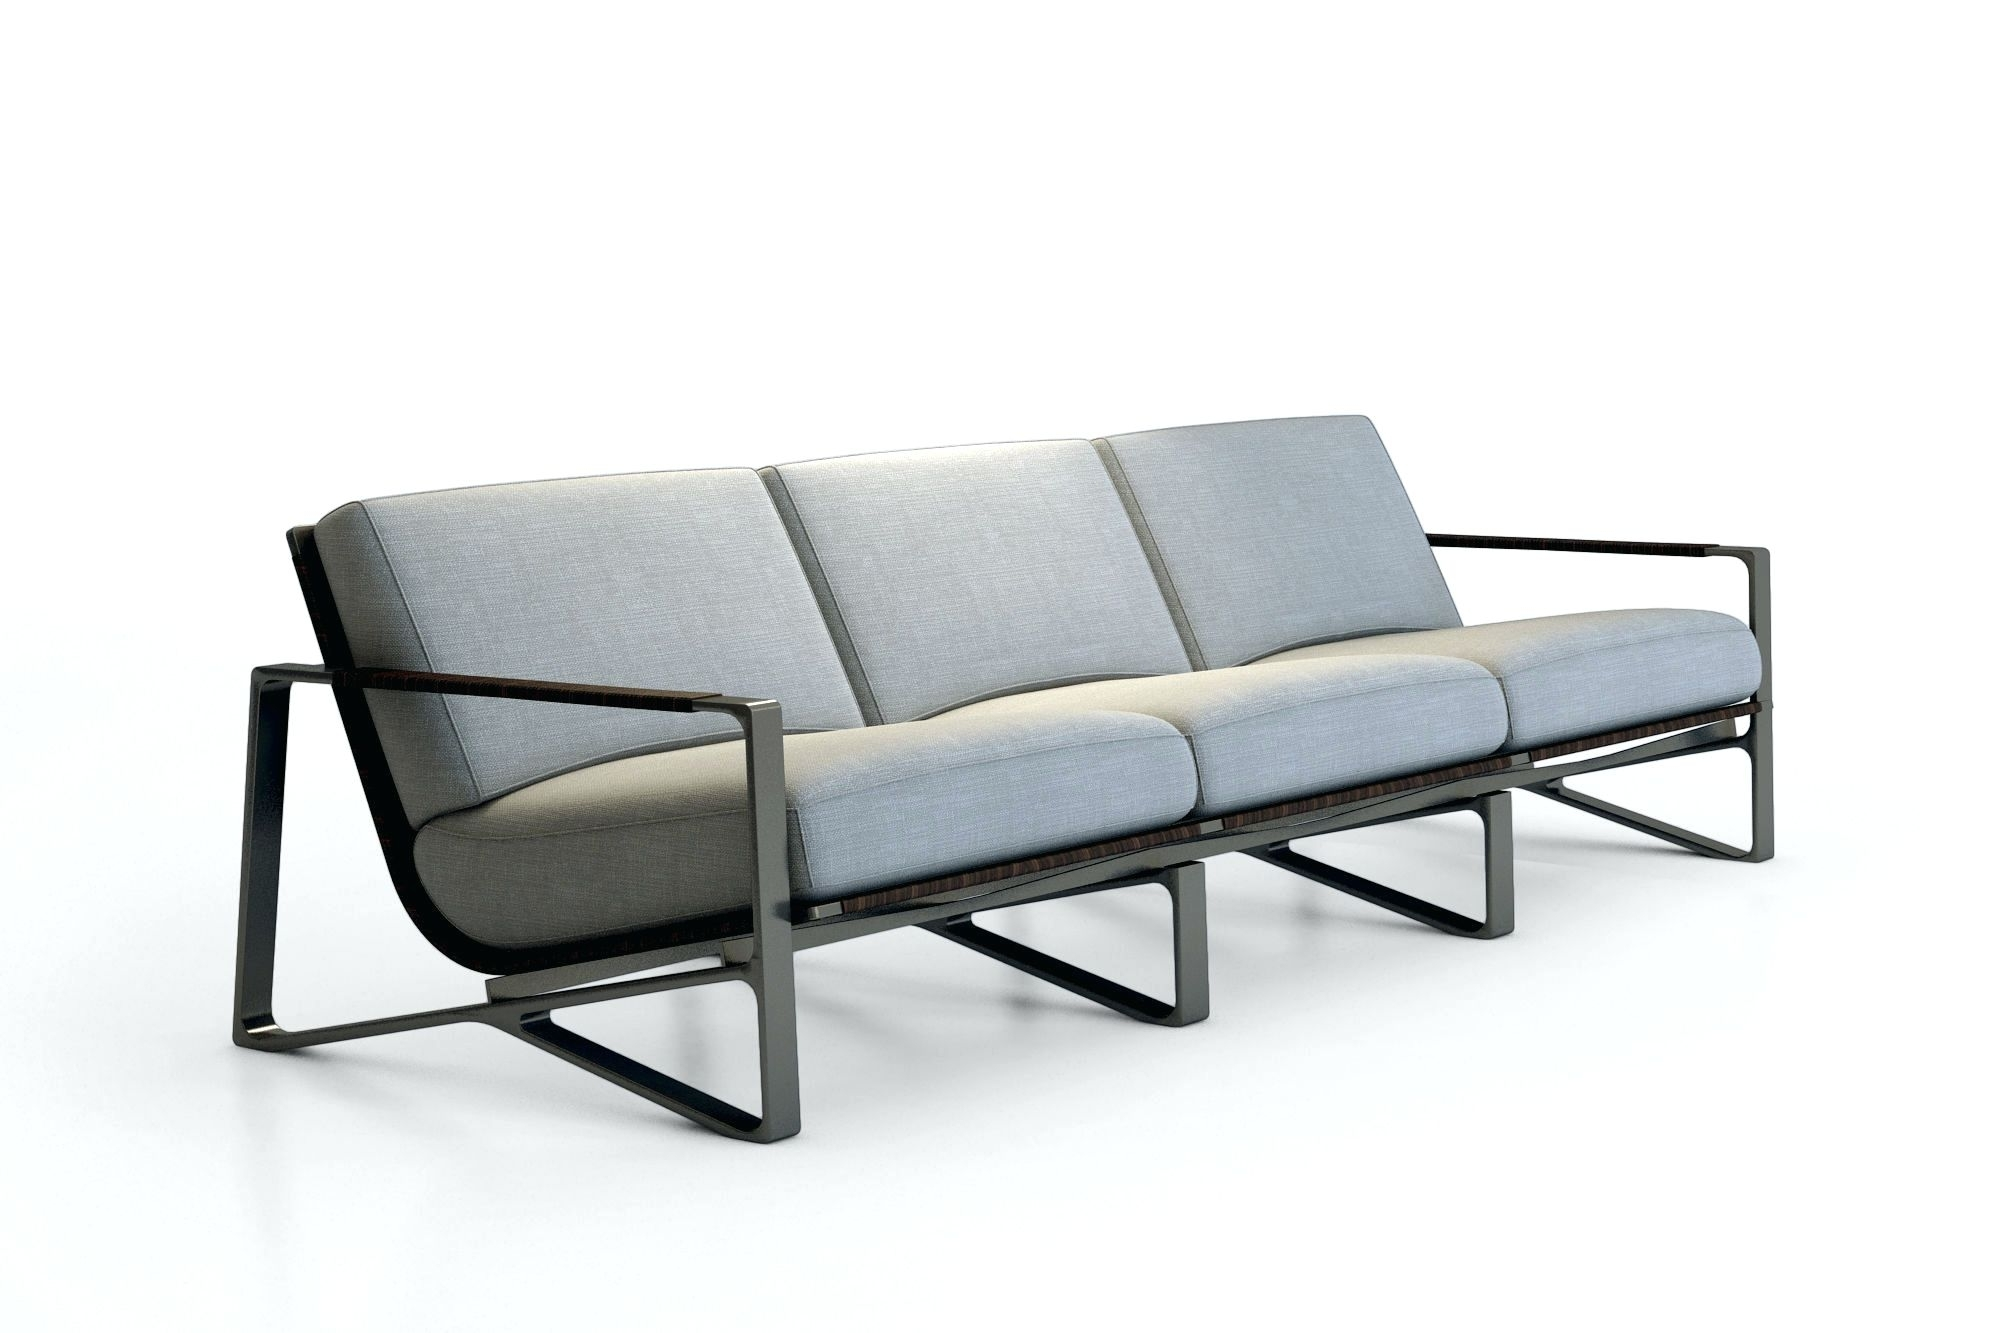 Fashionable Lounge Sofa Chair Clipart Varossa Chaise Lounge Recliner Chair With Regard To Varossa Chaise Lounge Recliner Chair Sofabeds (View 8 of 15)